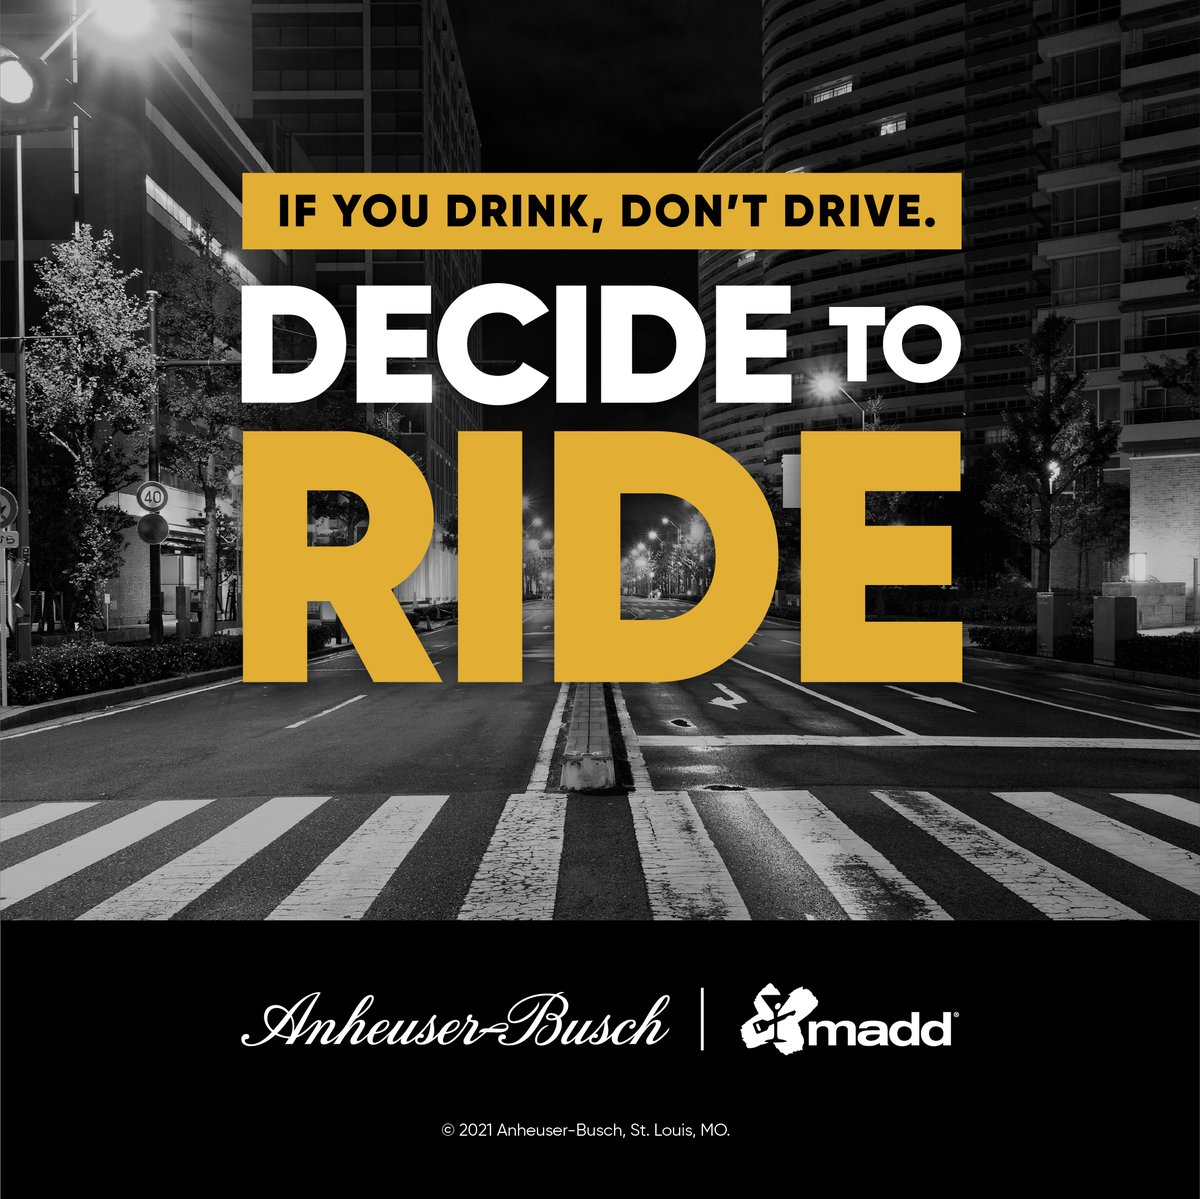 Help us put an end to drunk driving — plan ahead and #DecideToRide. Learn more about @budlight's partnership at decidetoride.com